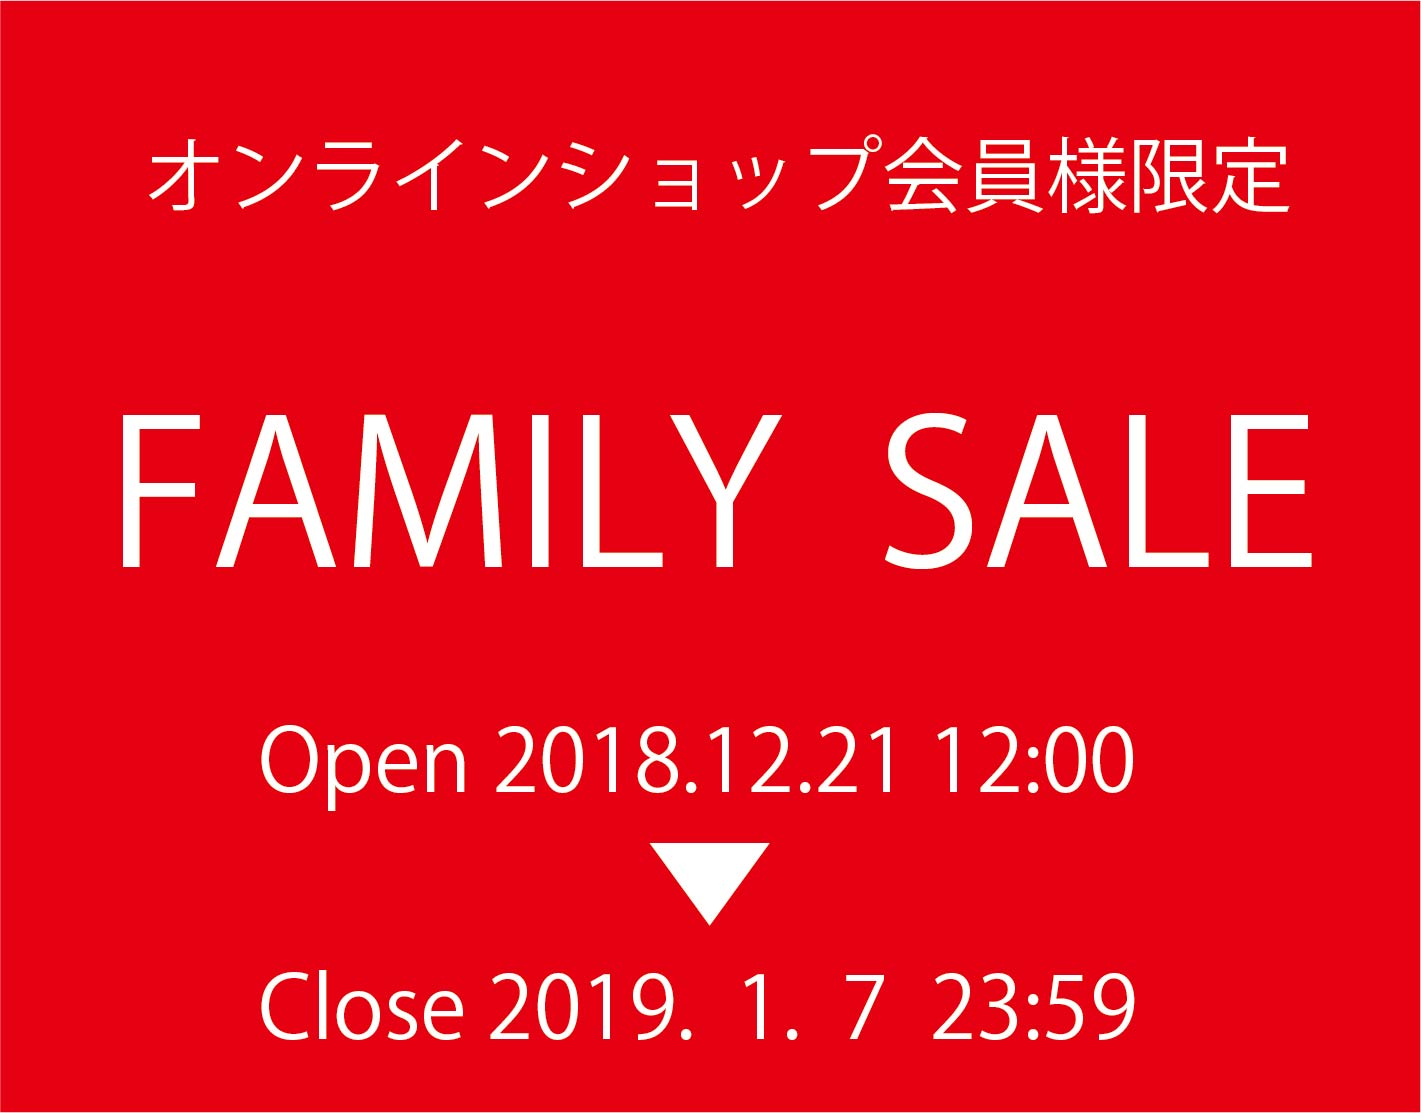 20185FAMILYSALE_500×390_RED